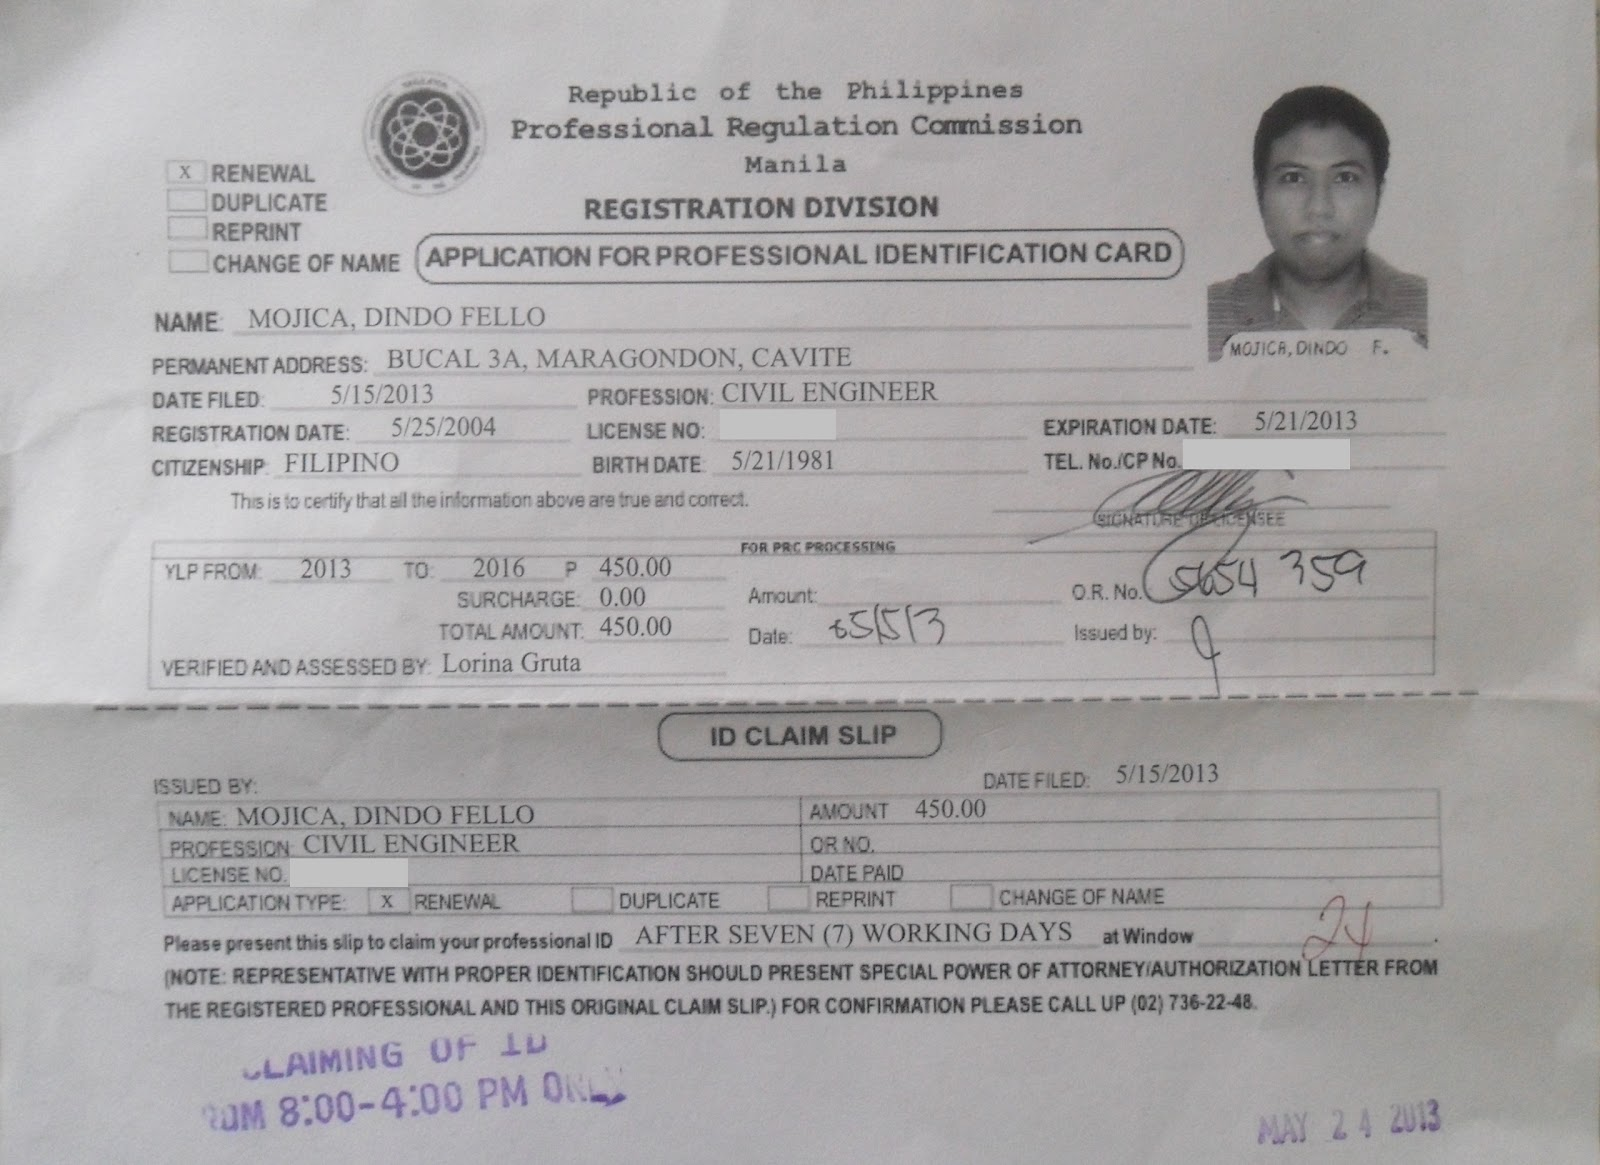 Printed form of Application for Professional Identification Card ...